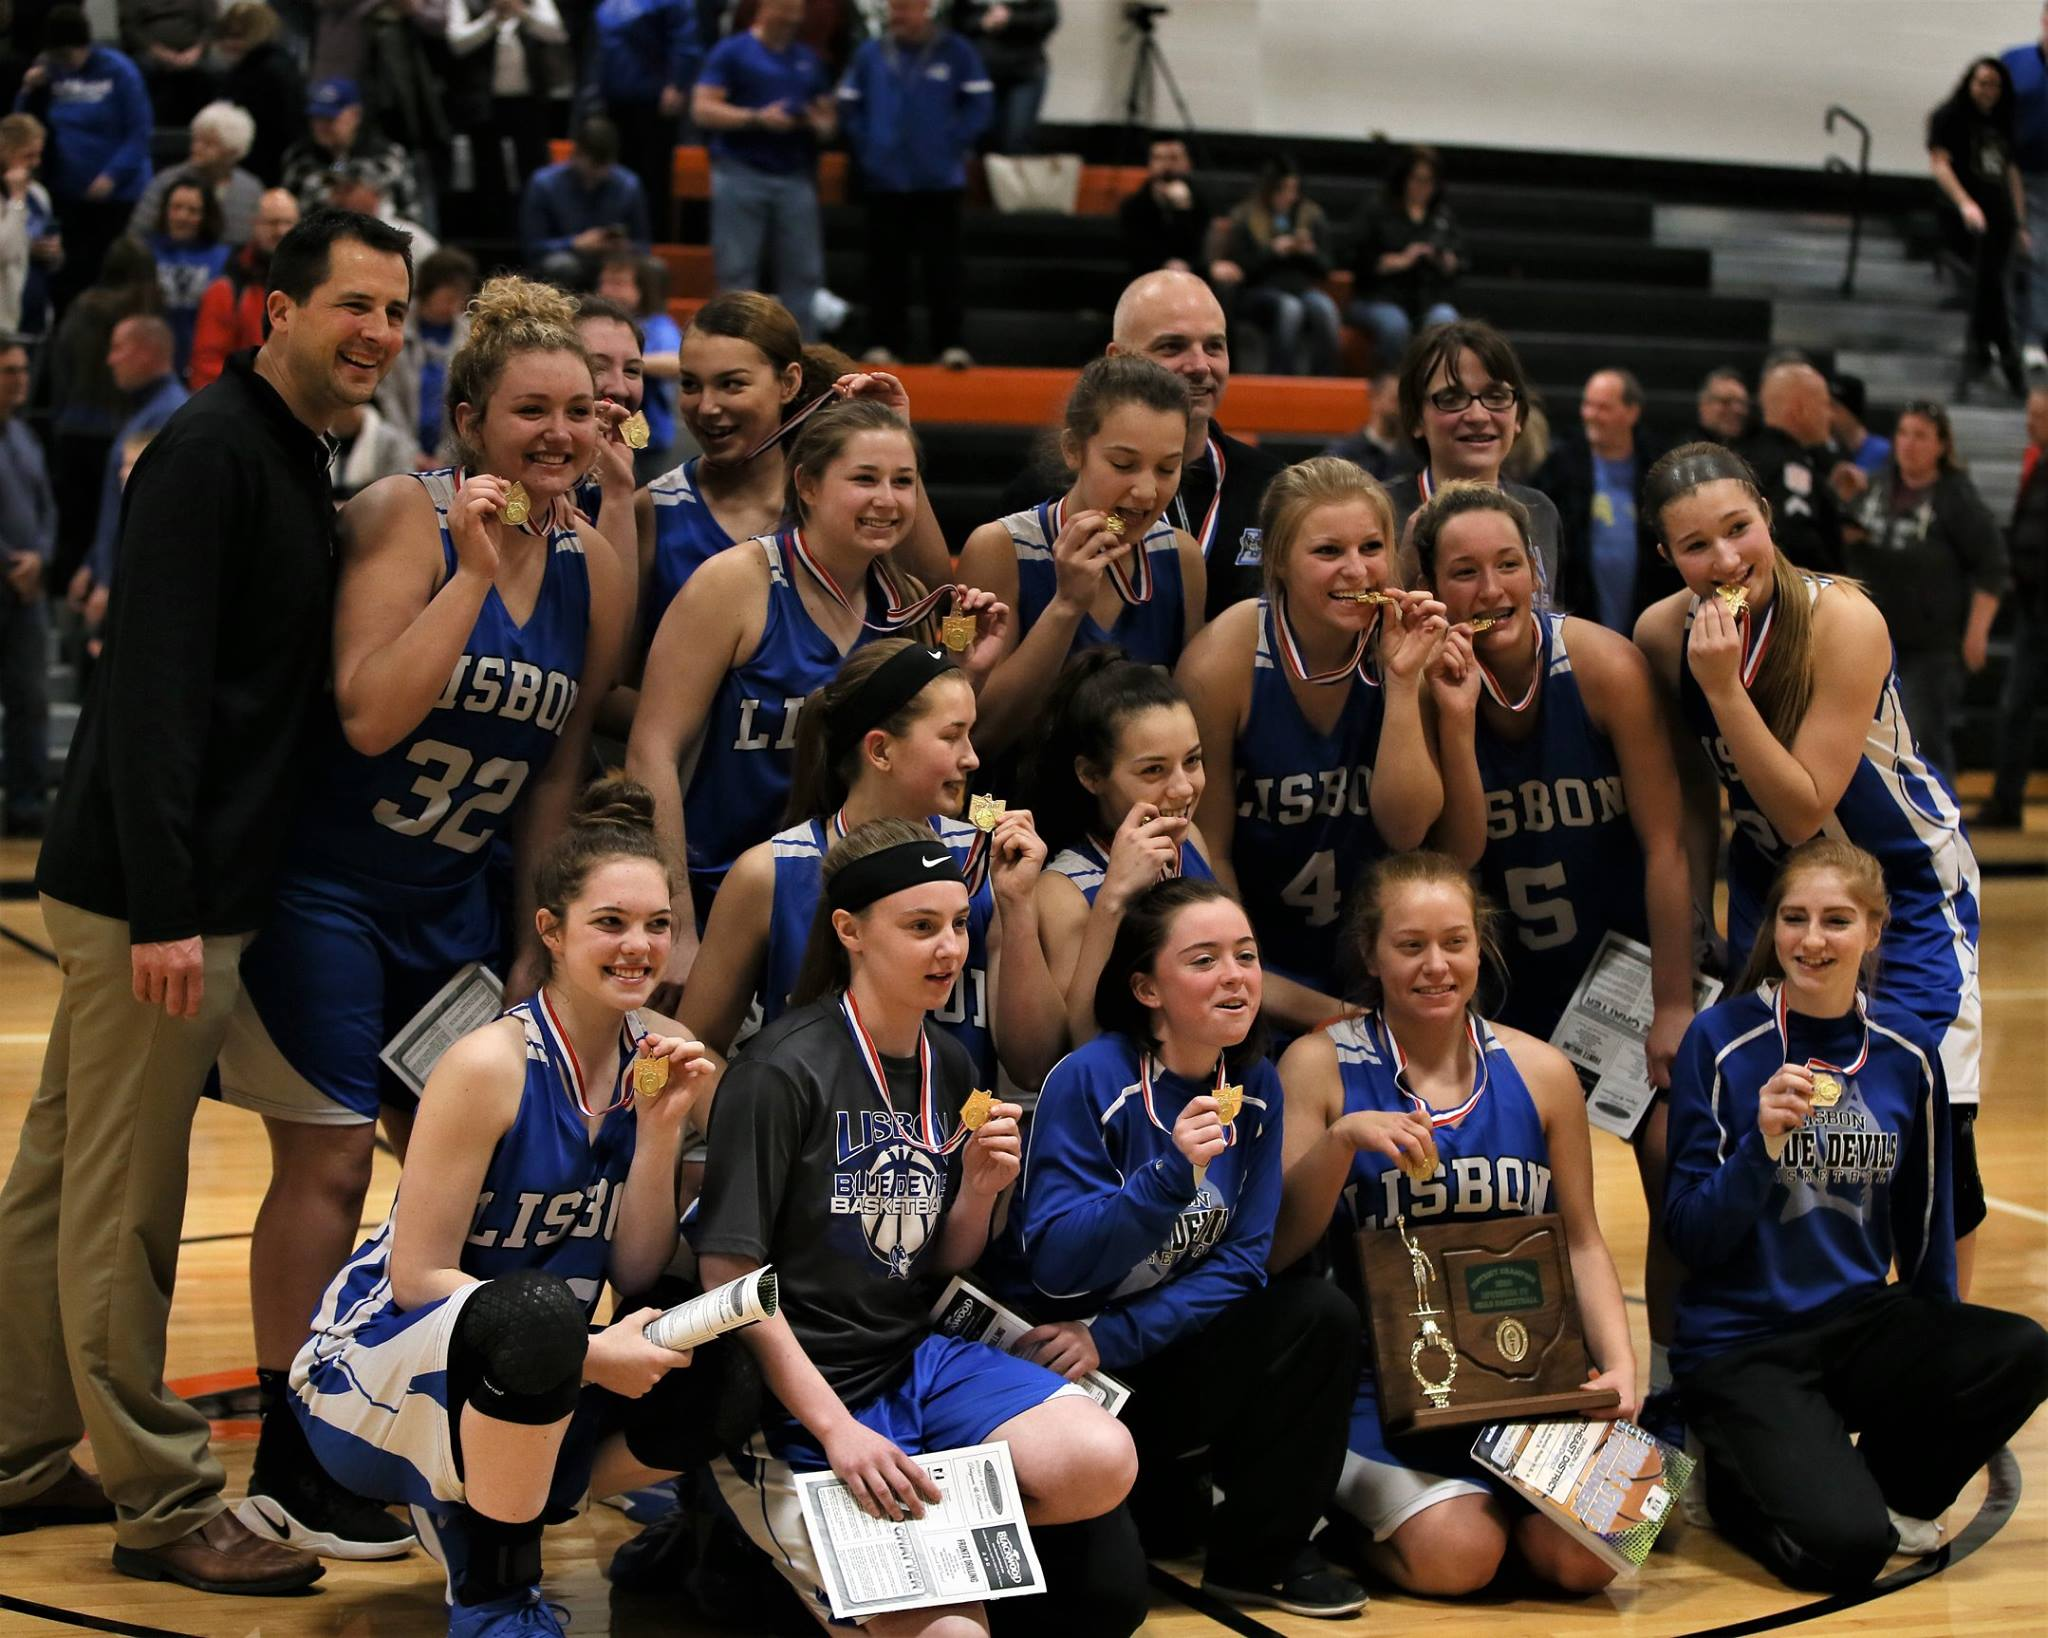 Lisbon Wins Districts at Mineral Ridge High School